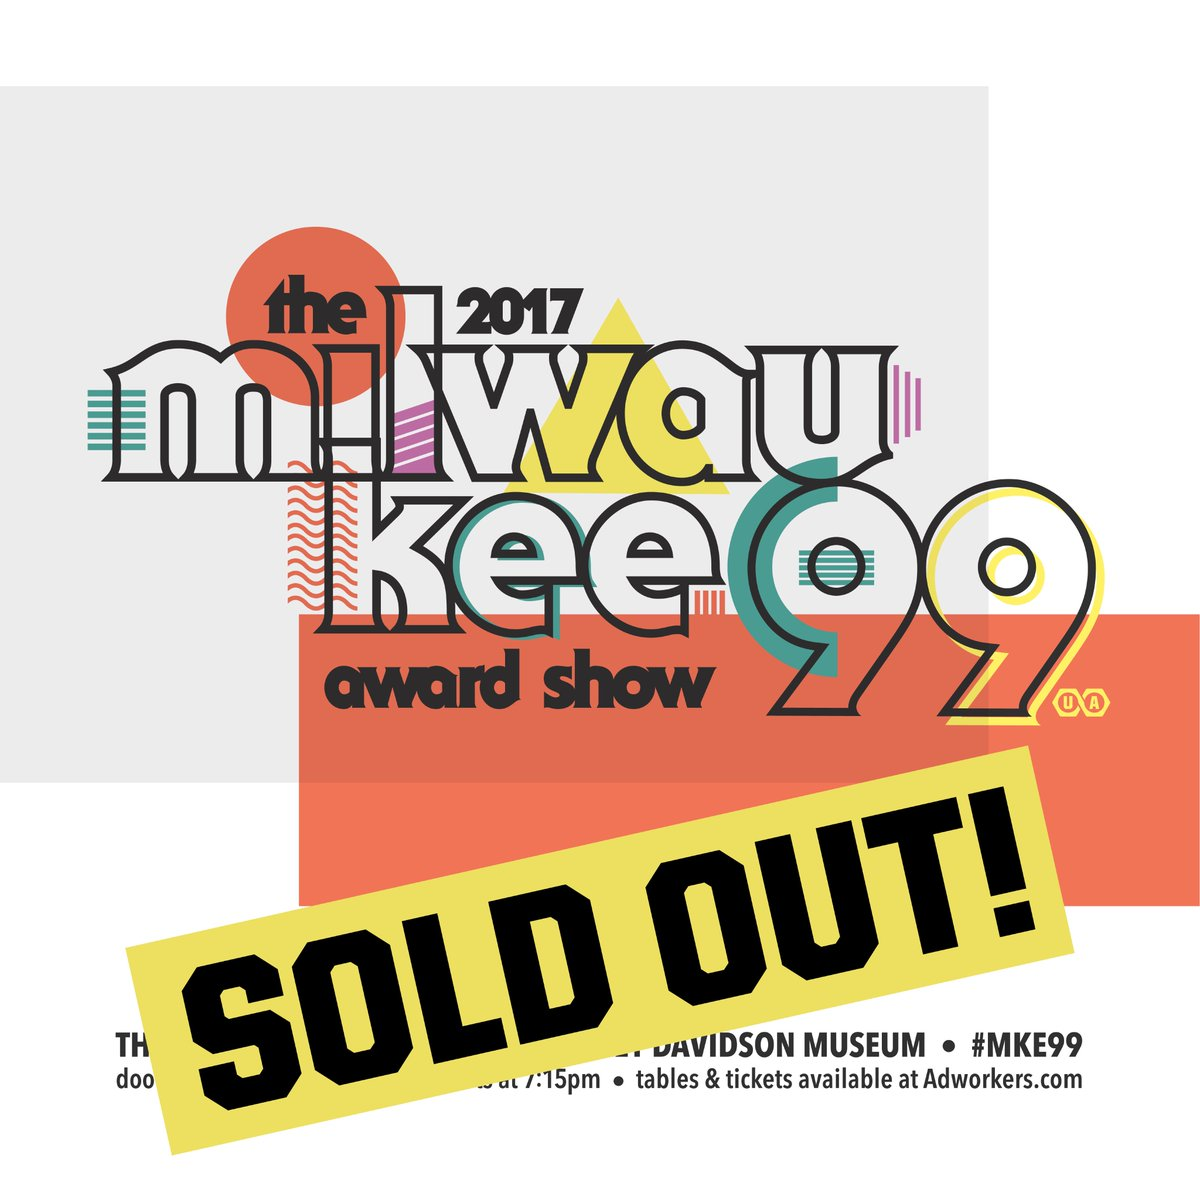 The #MKE99 Awards Show is officially SOLD OUT! Going to be a great night @hdmuseum. See you on October 12. https://t.co/EhIGKZL0U0